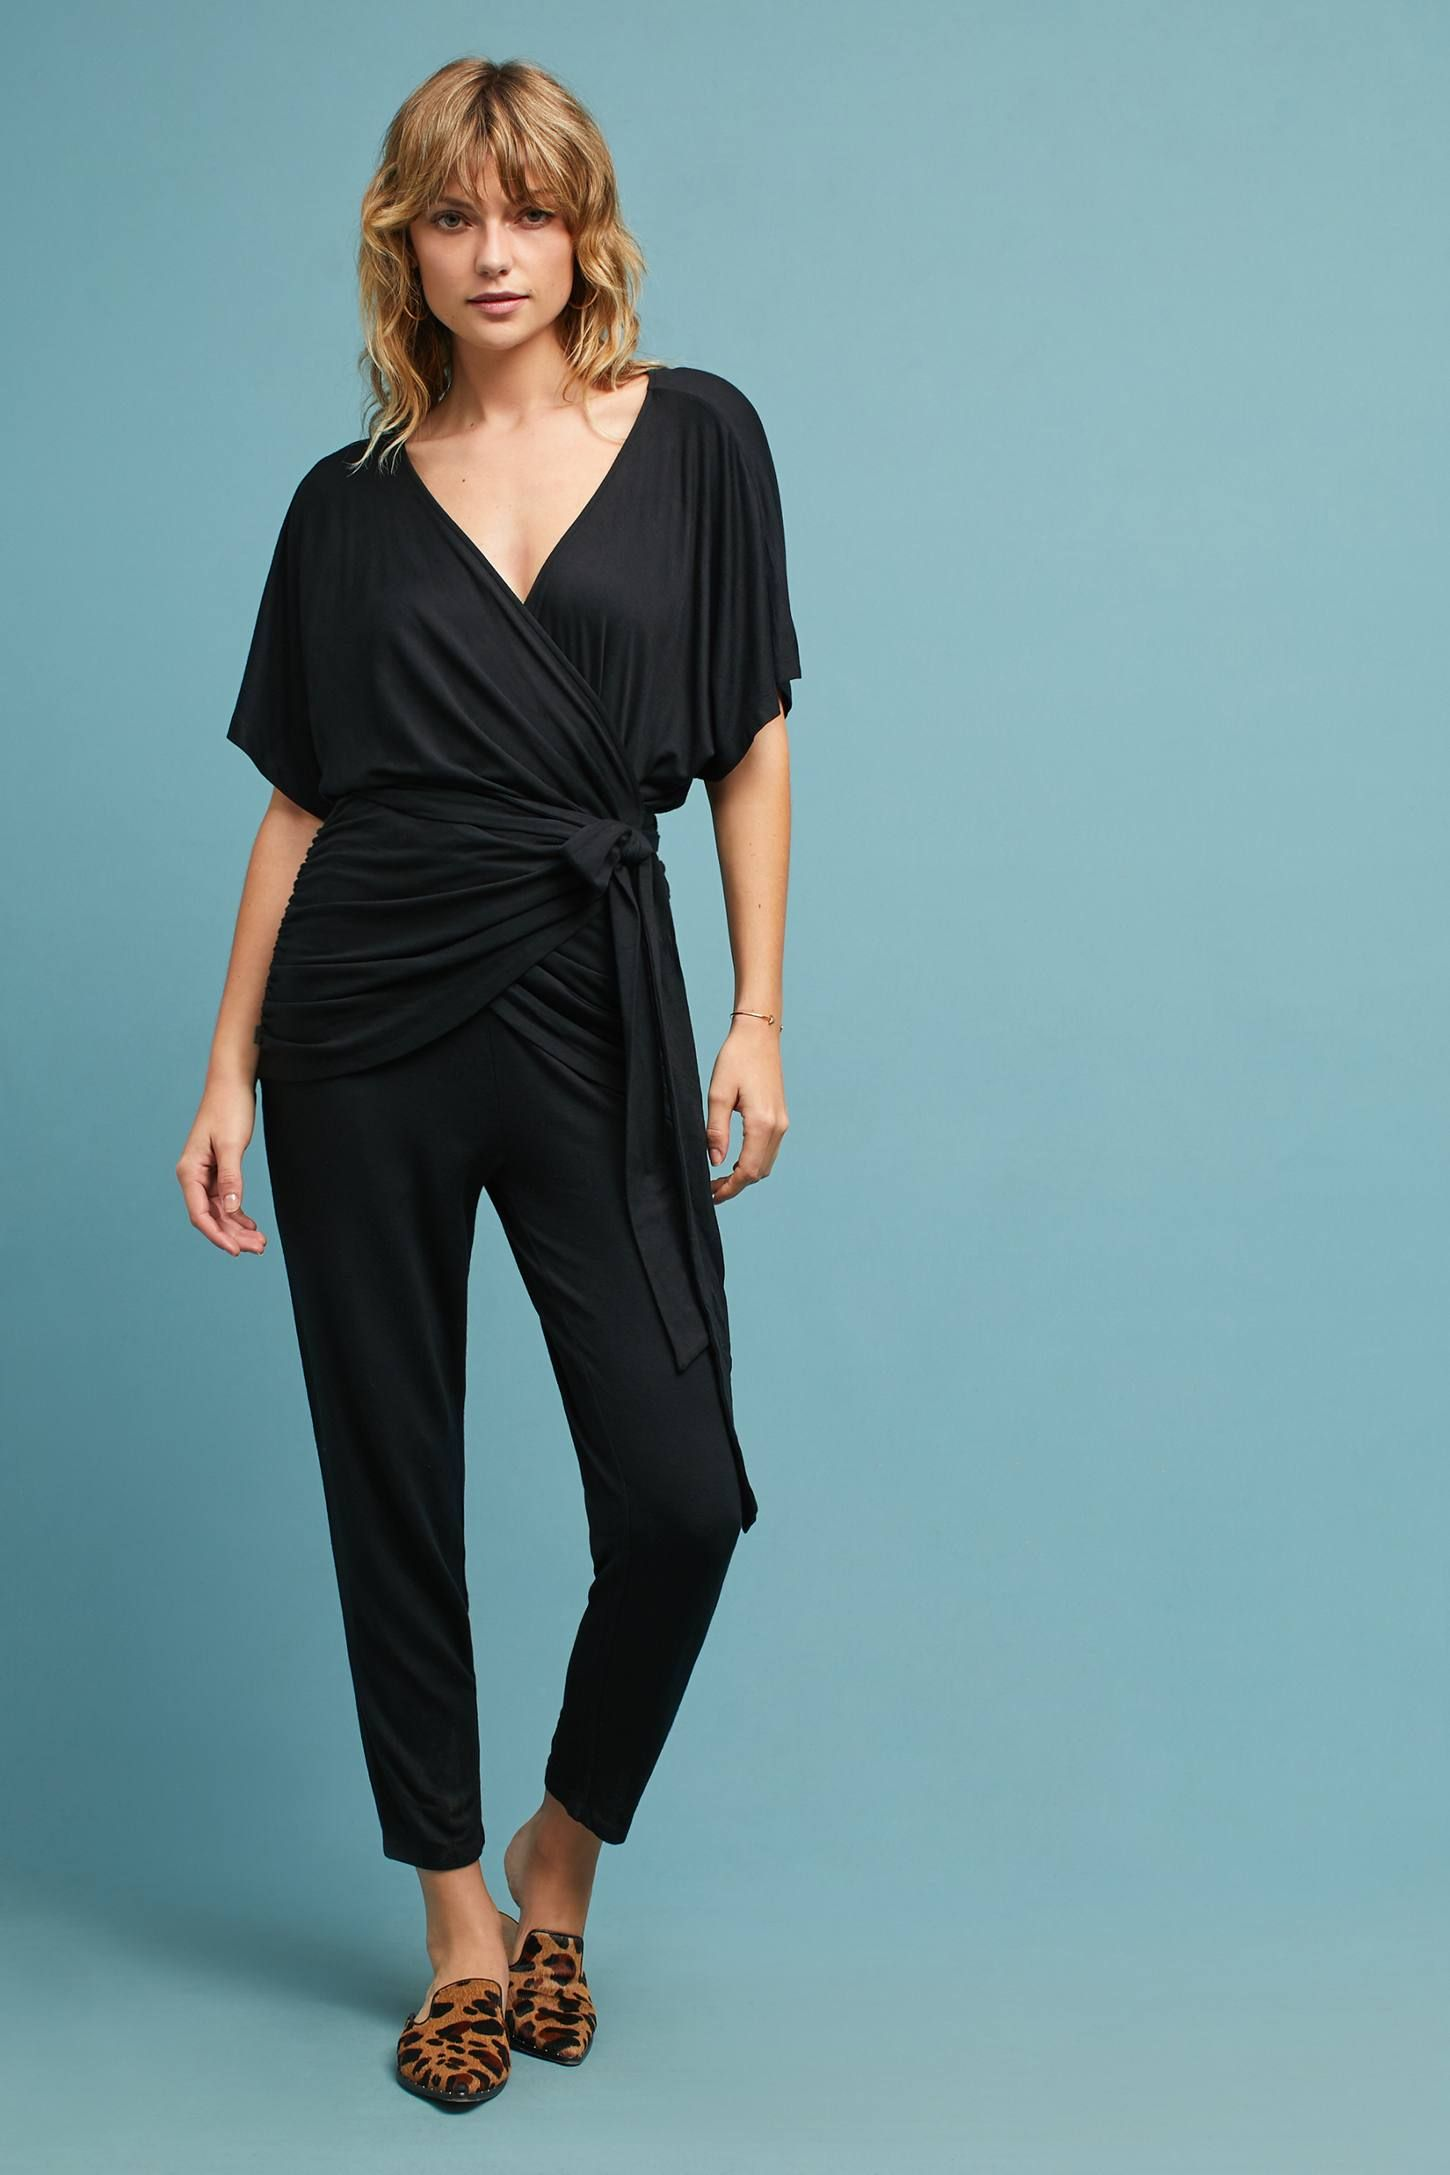 Lace dress in black august 2019 Draped TieWaist Jumpsuit  Anthropologie and Shopping